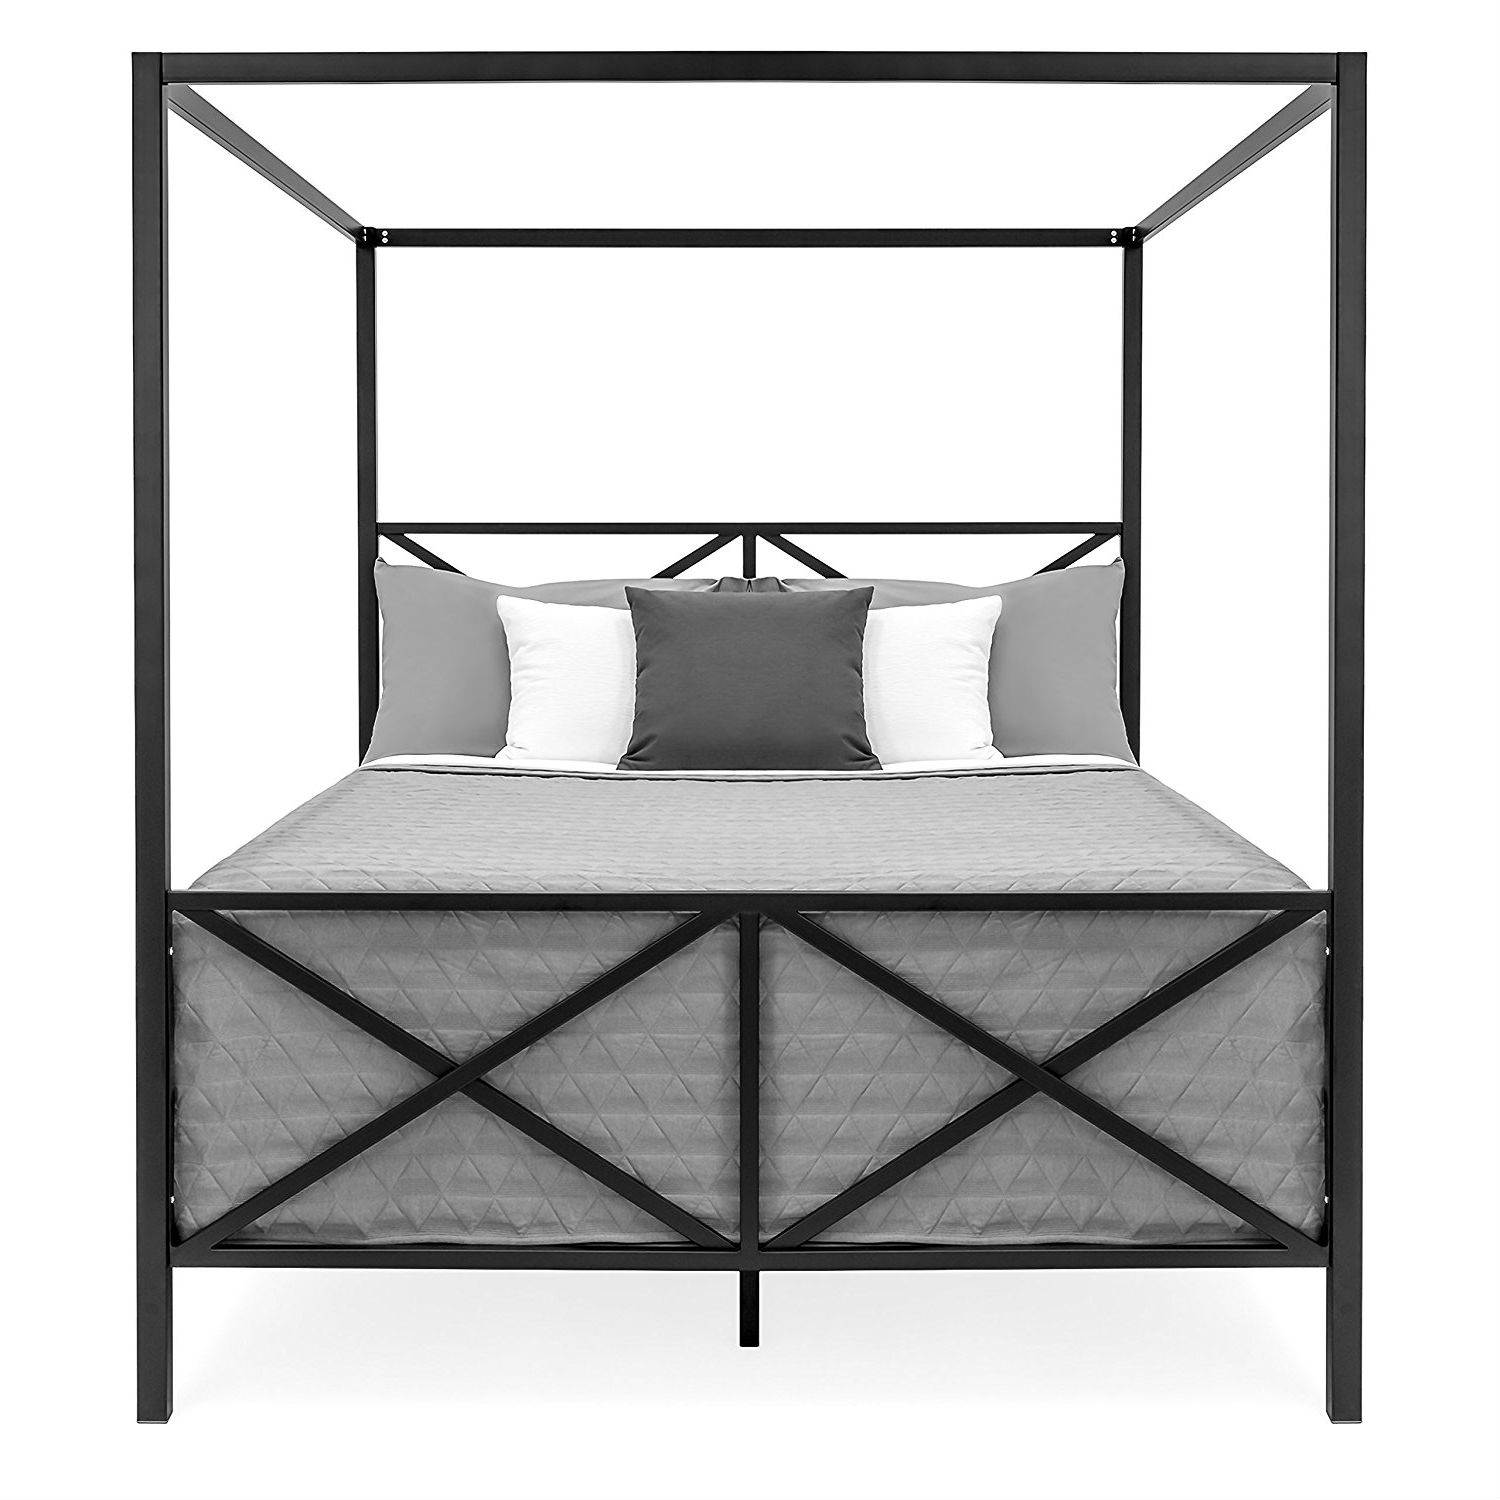 Queen Size Modern Industrial Style Canopy Bed Frame In Black Metal Finish Fastfurnishings Com